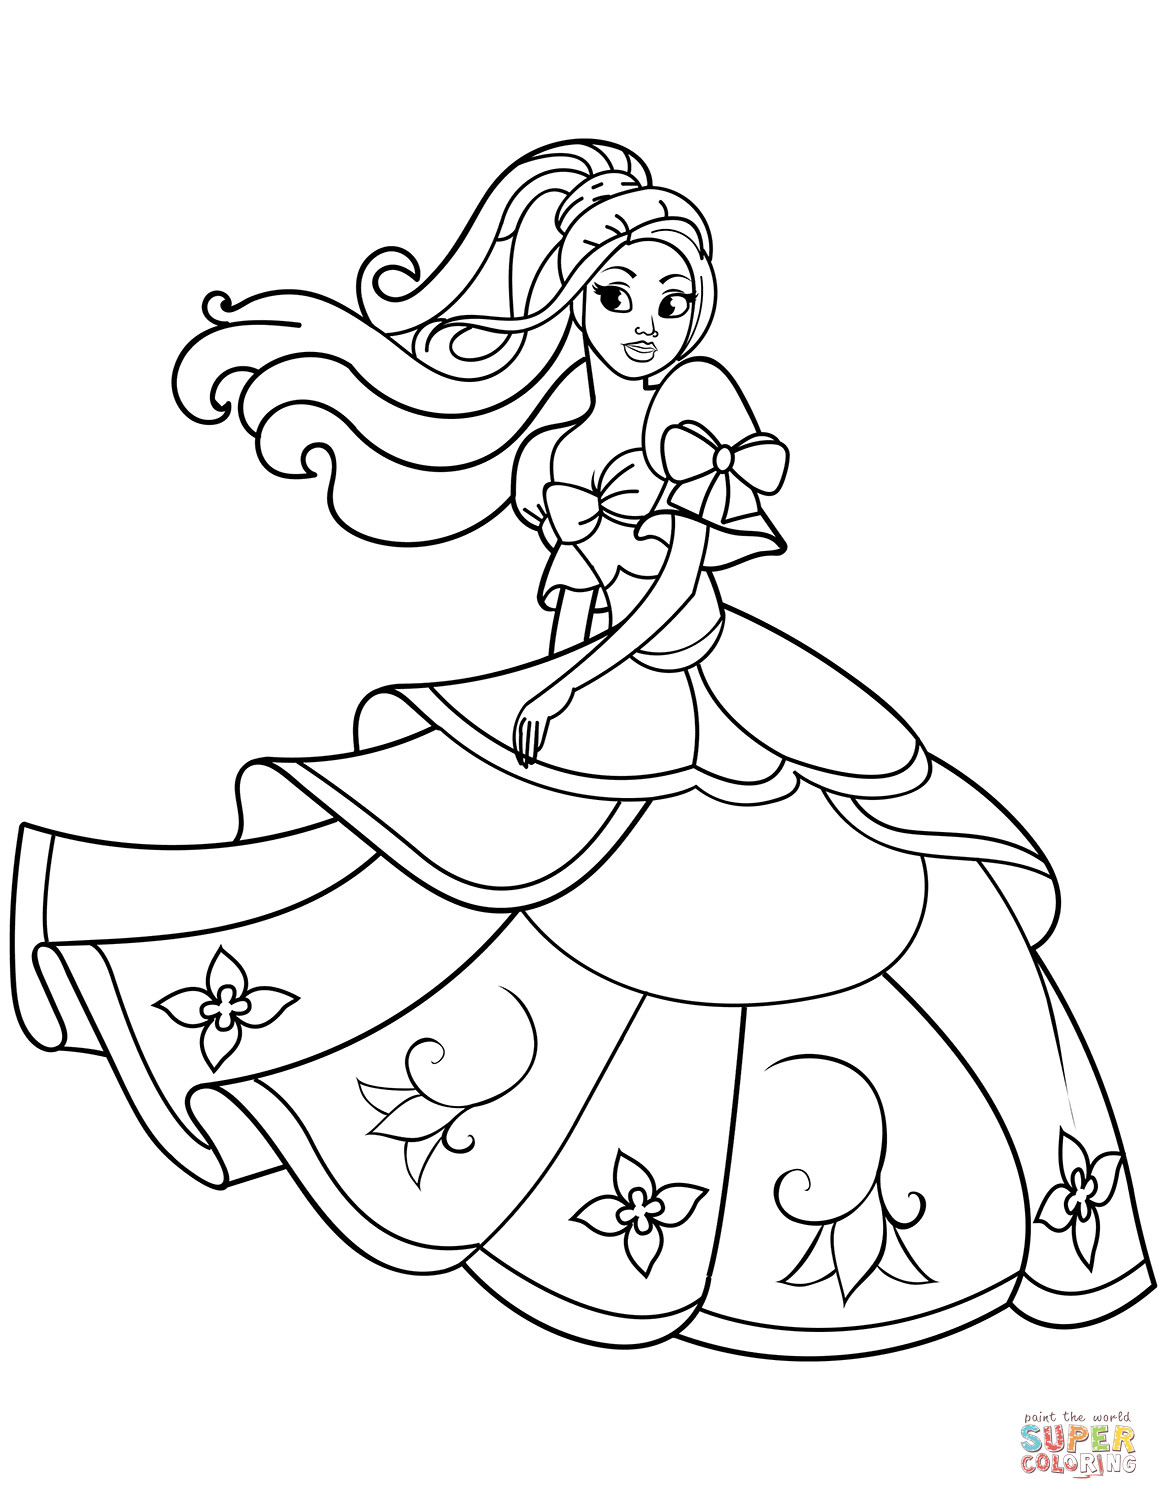 Best ideas about Free Princess Printable Coloring Pages . Save or Pin Dancing Princess coloring page Now.